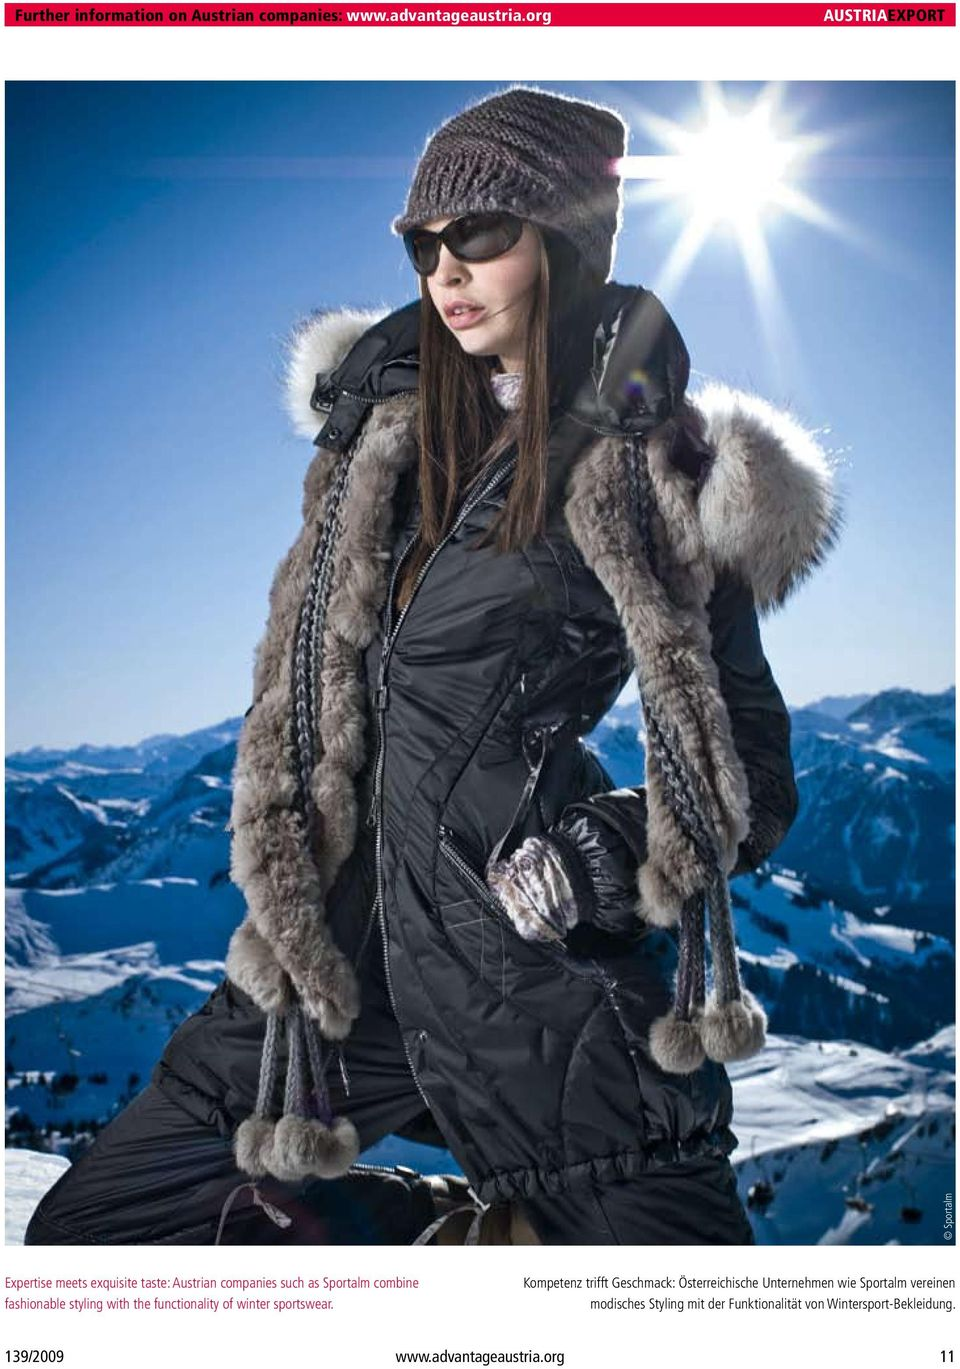 fashionable styling with the functionality of winter sportswear.